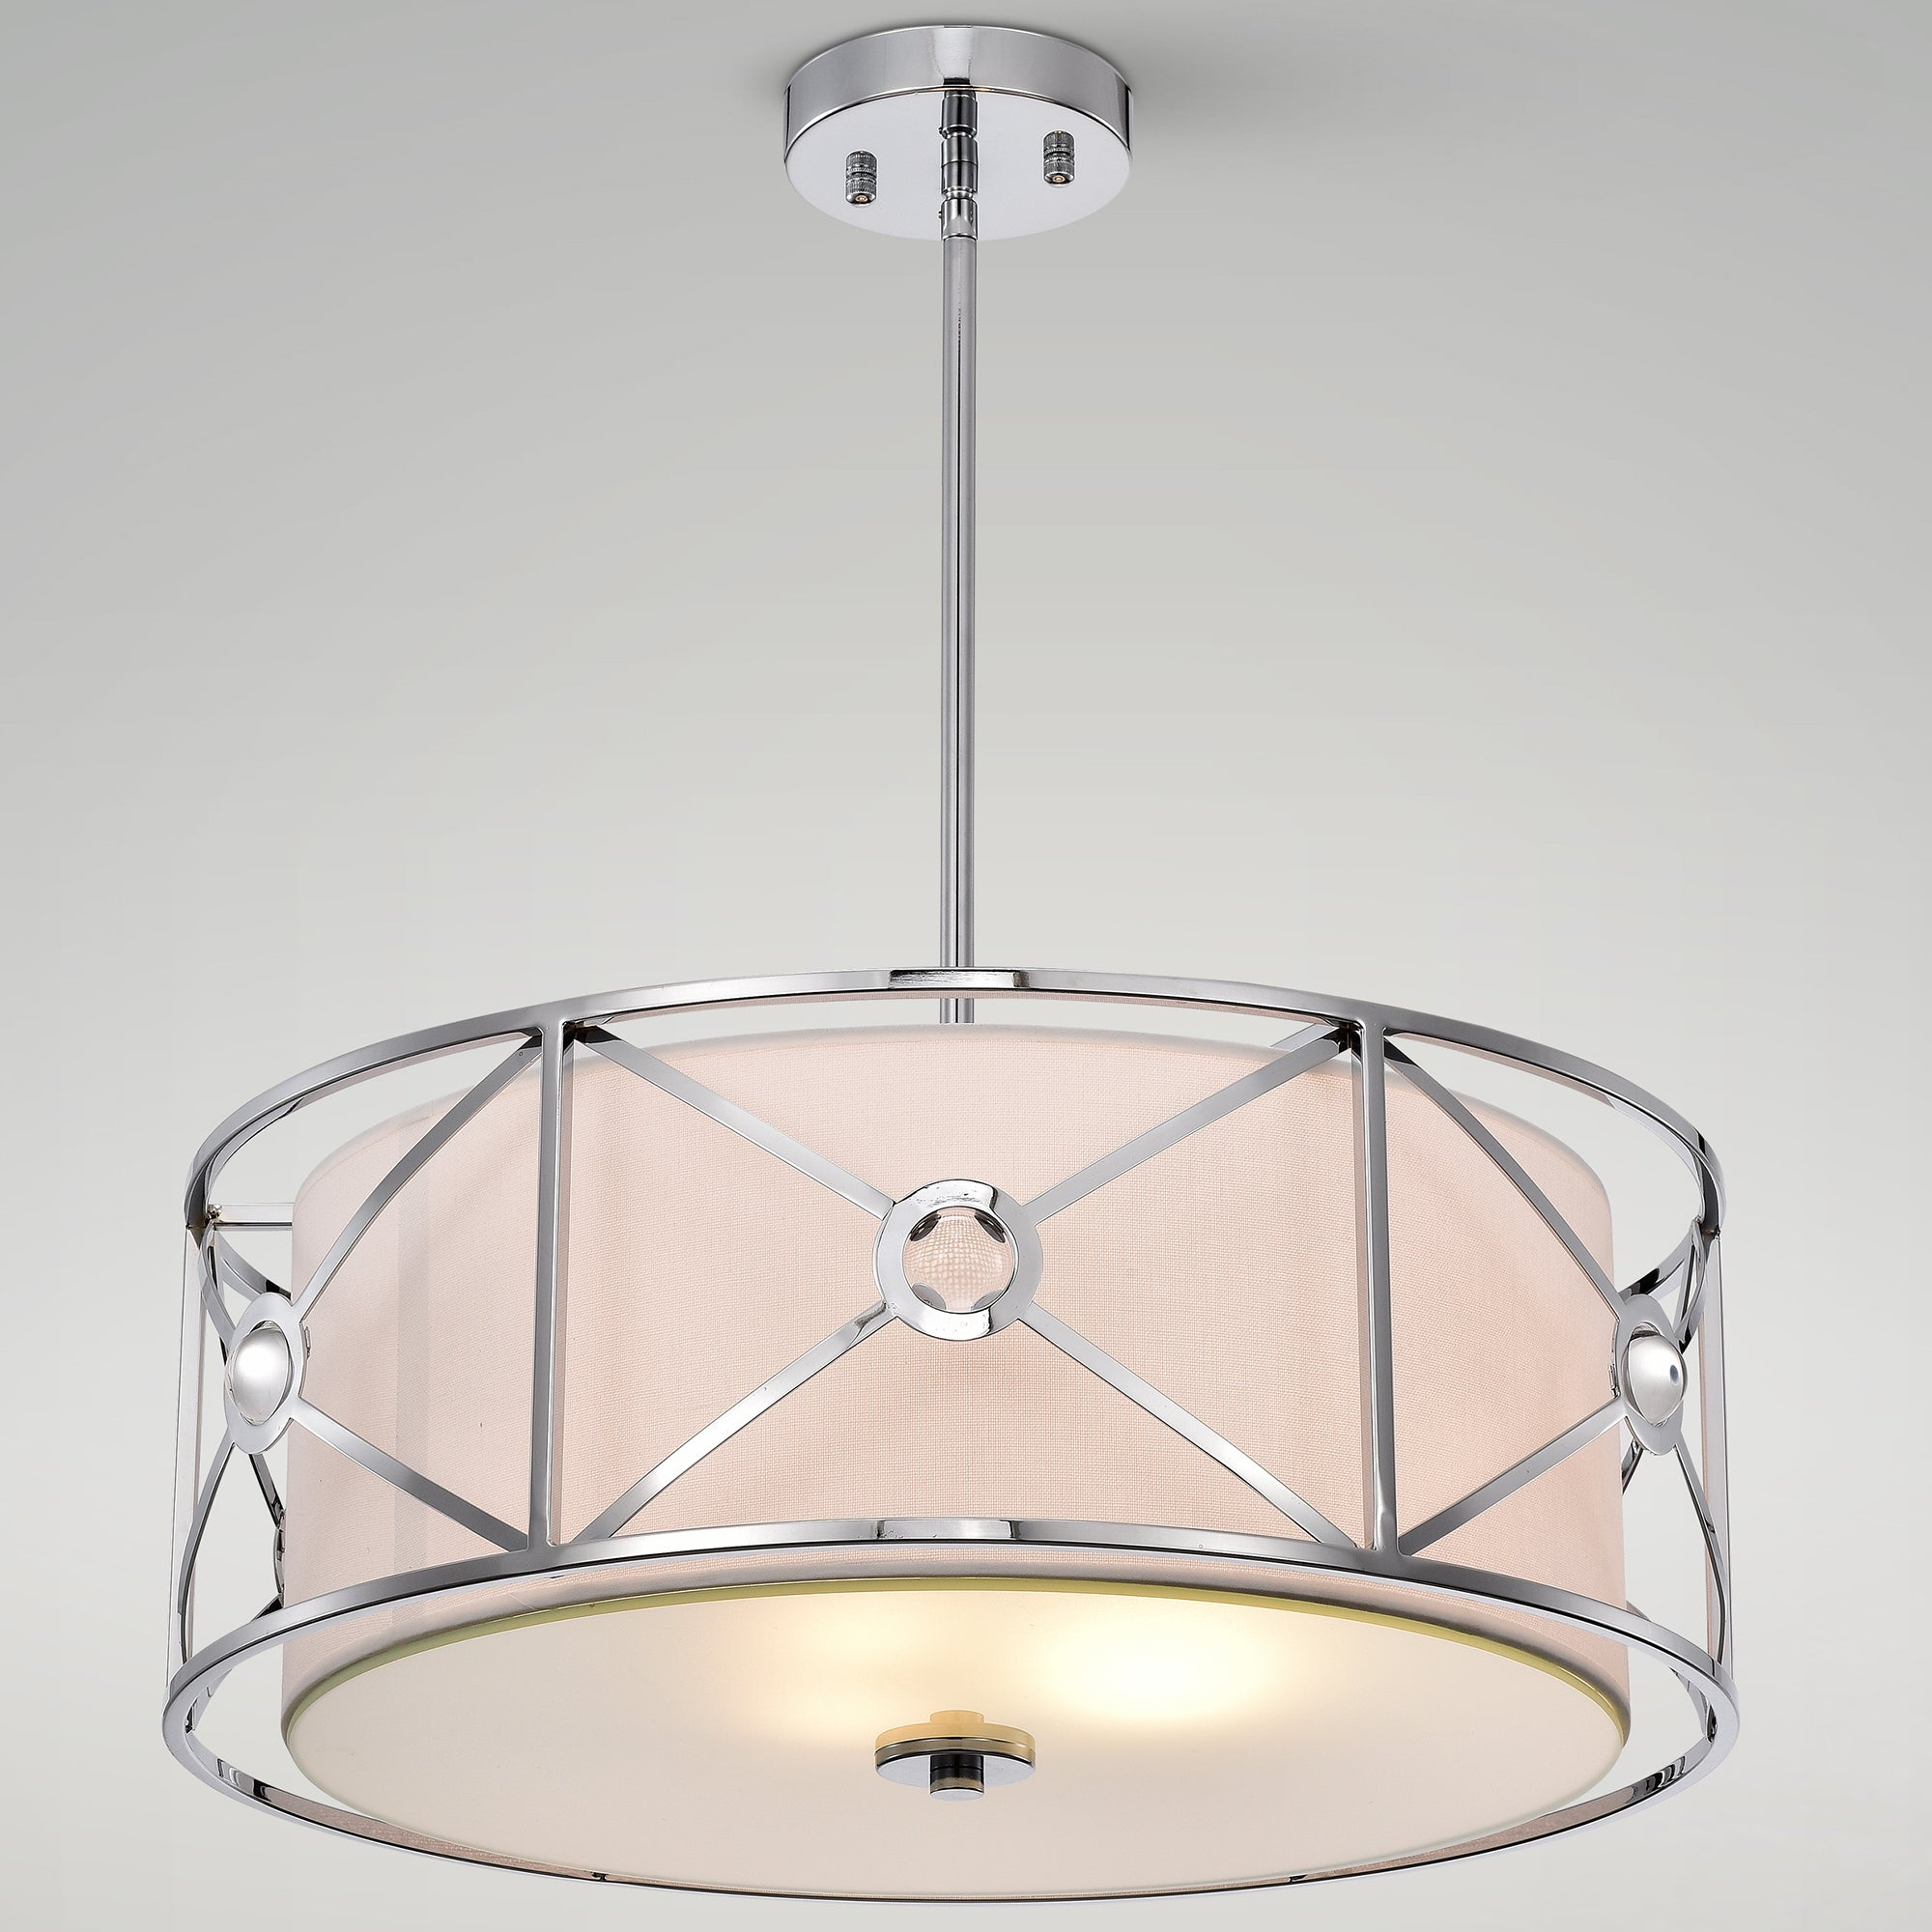 Shop Black Friday Deals On Penni Chrome 3 Light Geometric Metal Fabric Crystal Drum Shade Chandelier On Sale Overstock 31722838